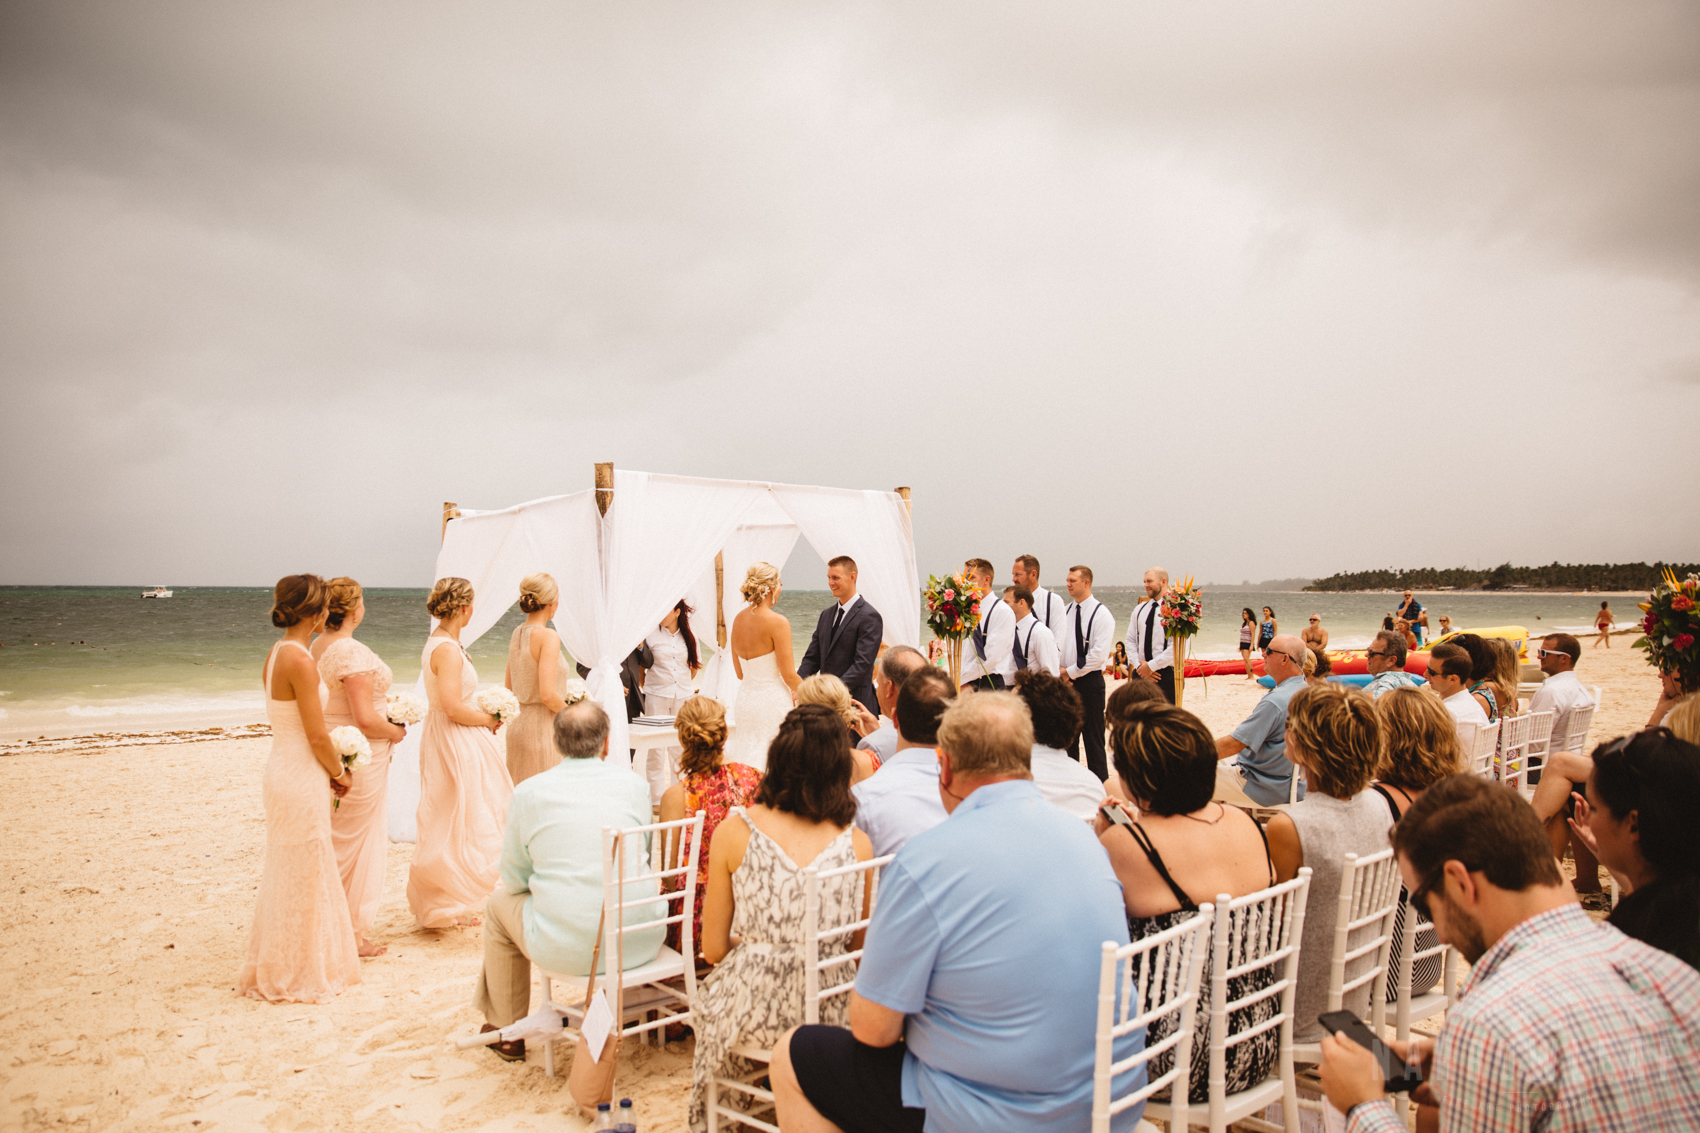 punta-cana-dominican-republic-destination-wedding-beach-ceremony-6769.jpg